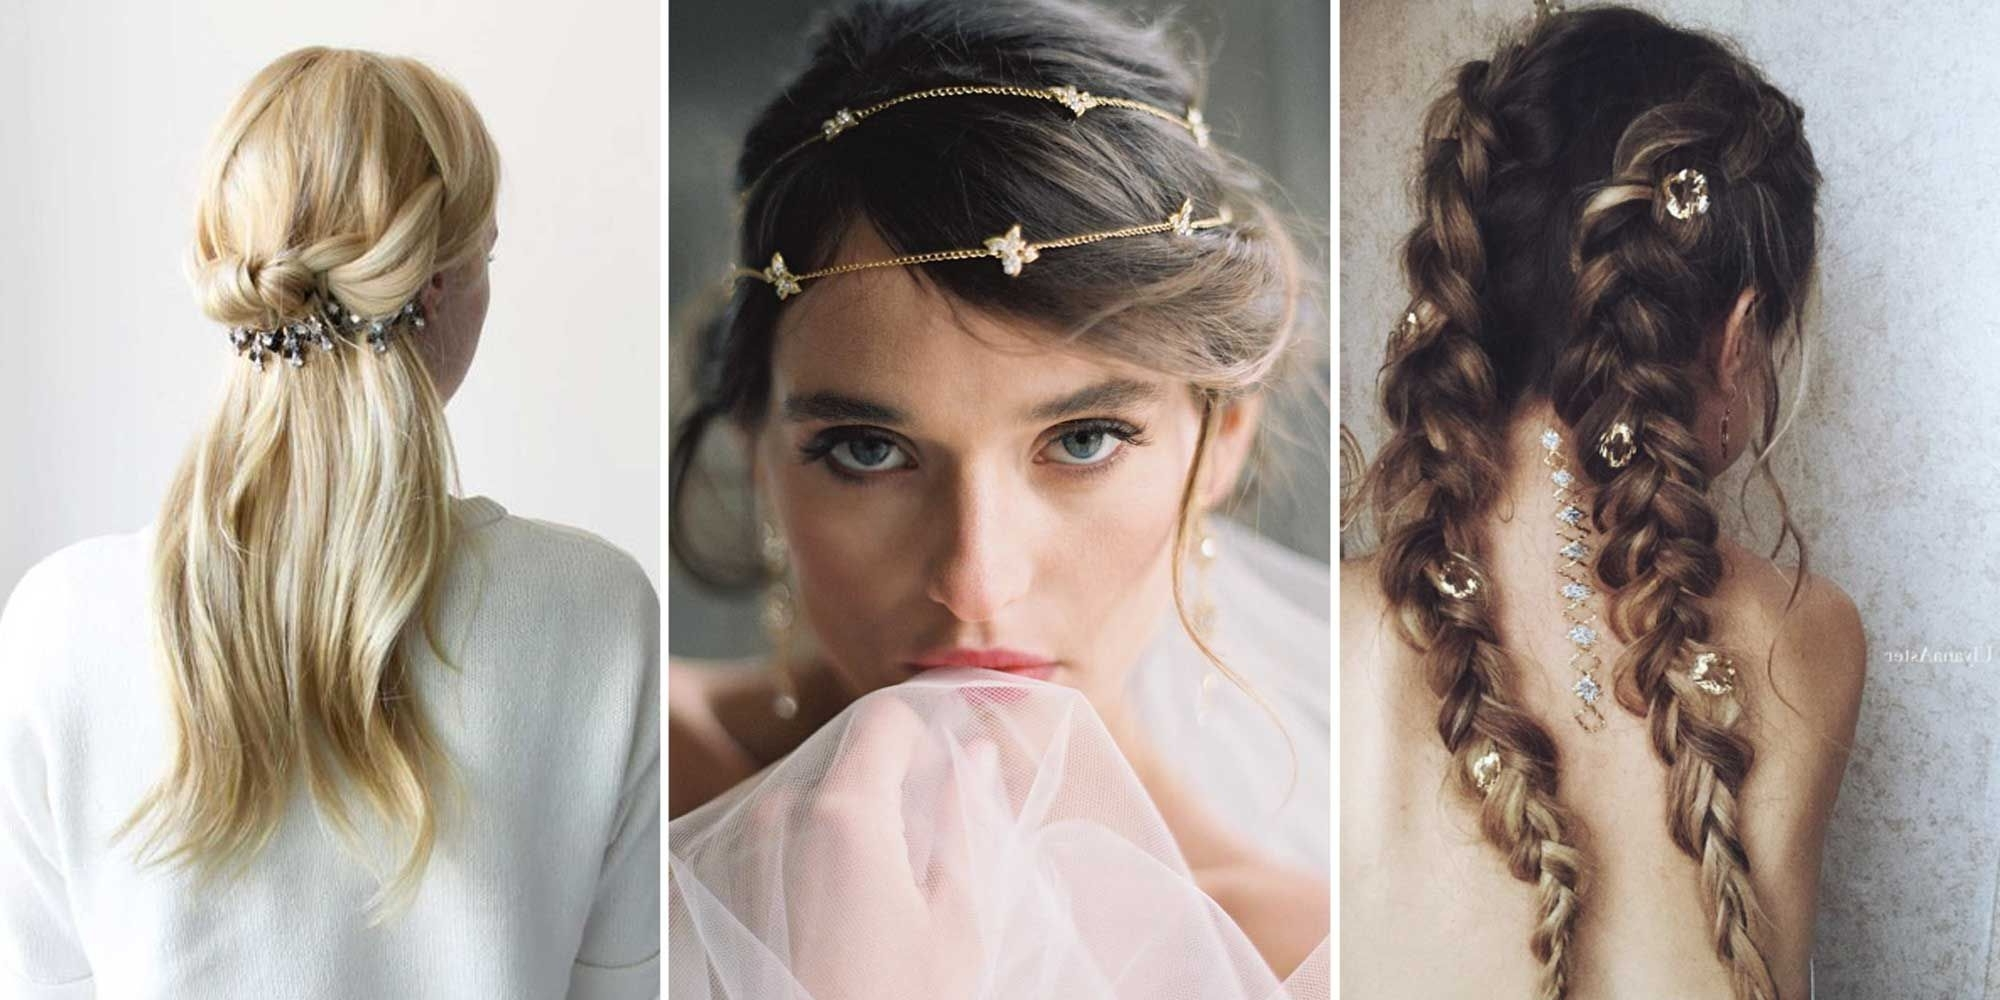 Famous Braided Hairstyles With Jewelry Pertaining To Ways To Wear Hair Jewelry – Beautiful Hair Accessories (View 8 of 15)